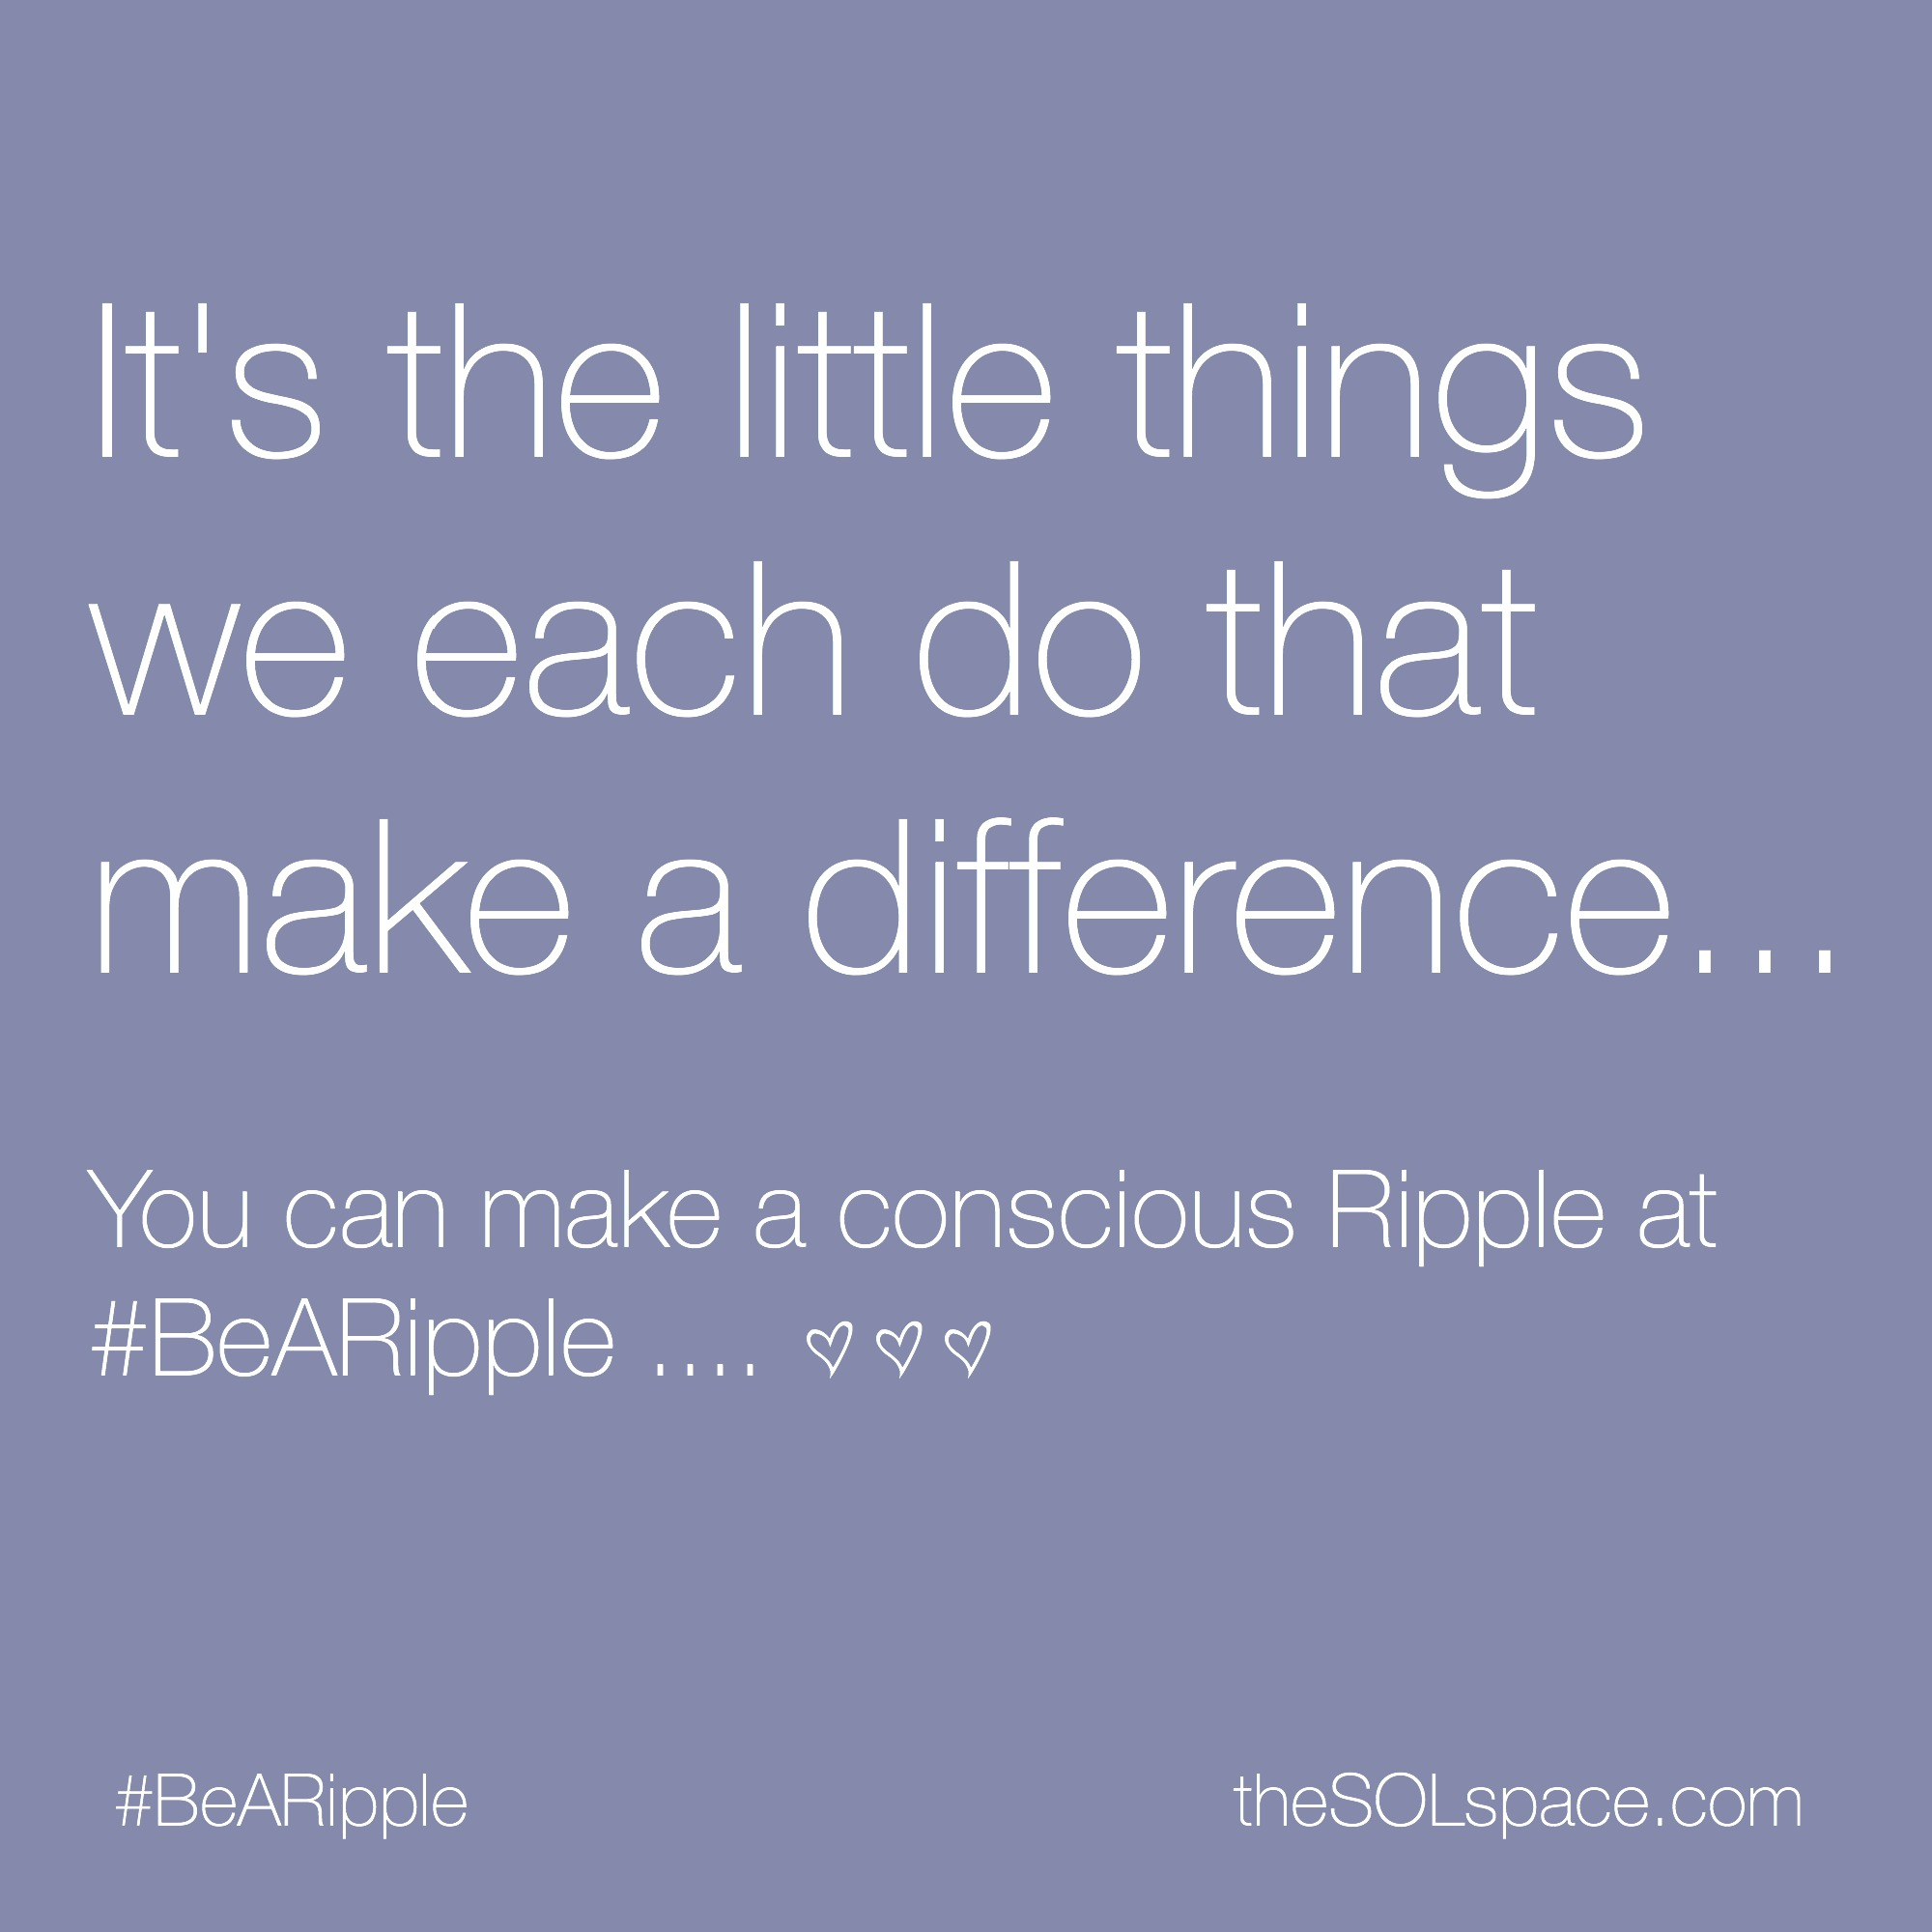 #BeARipple...Its the little things we each do that make a difference...You can make a conscious Ripple @theSOLspace